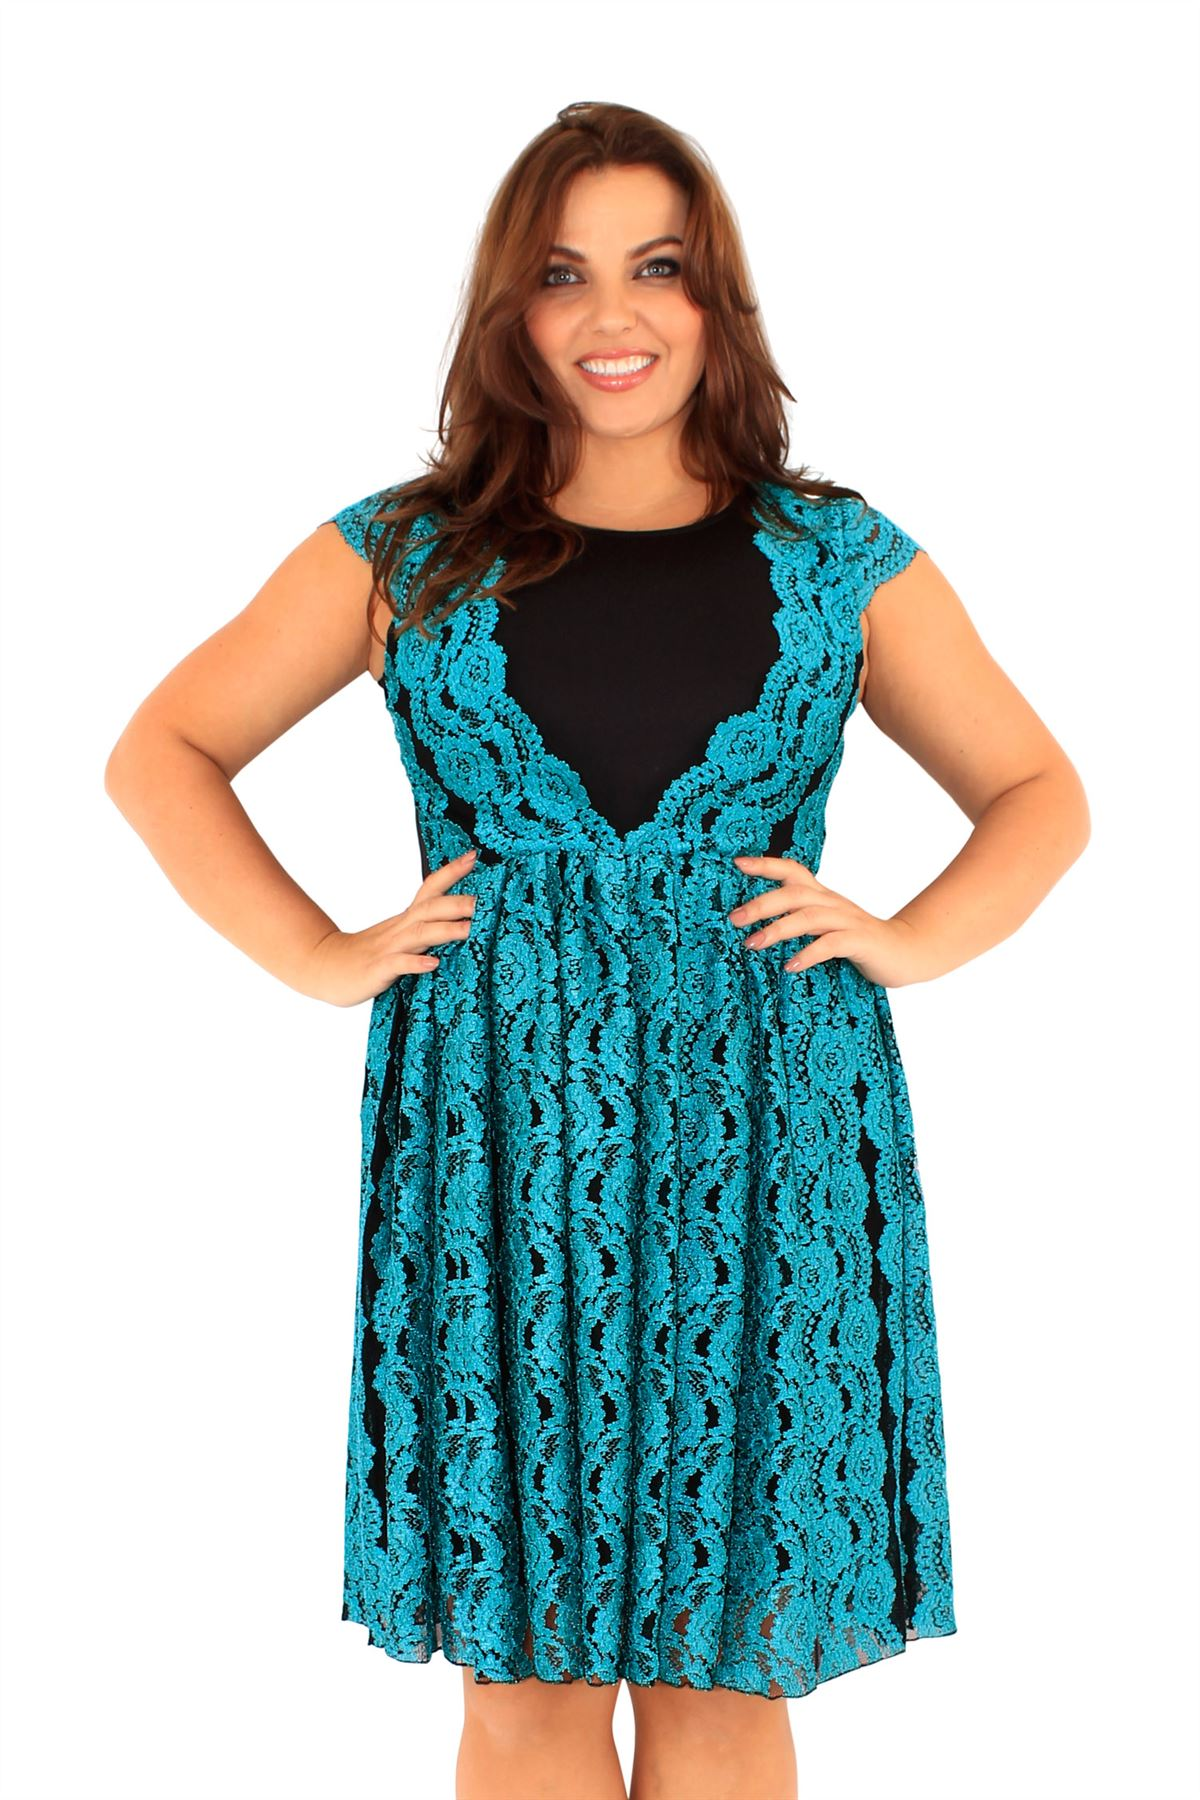 Browse Dillard's slimming selection of plus size women's dresses, tops, pants and swim.